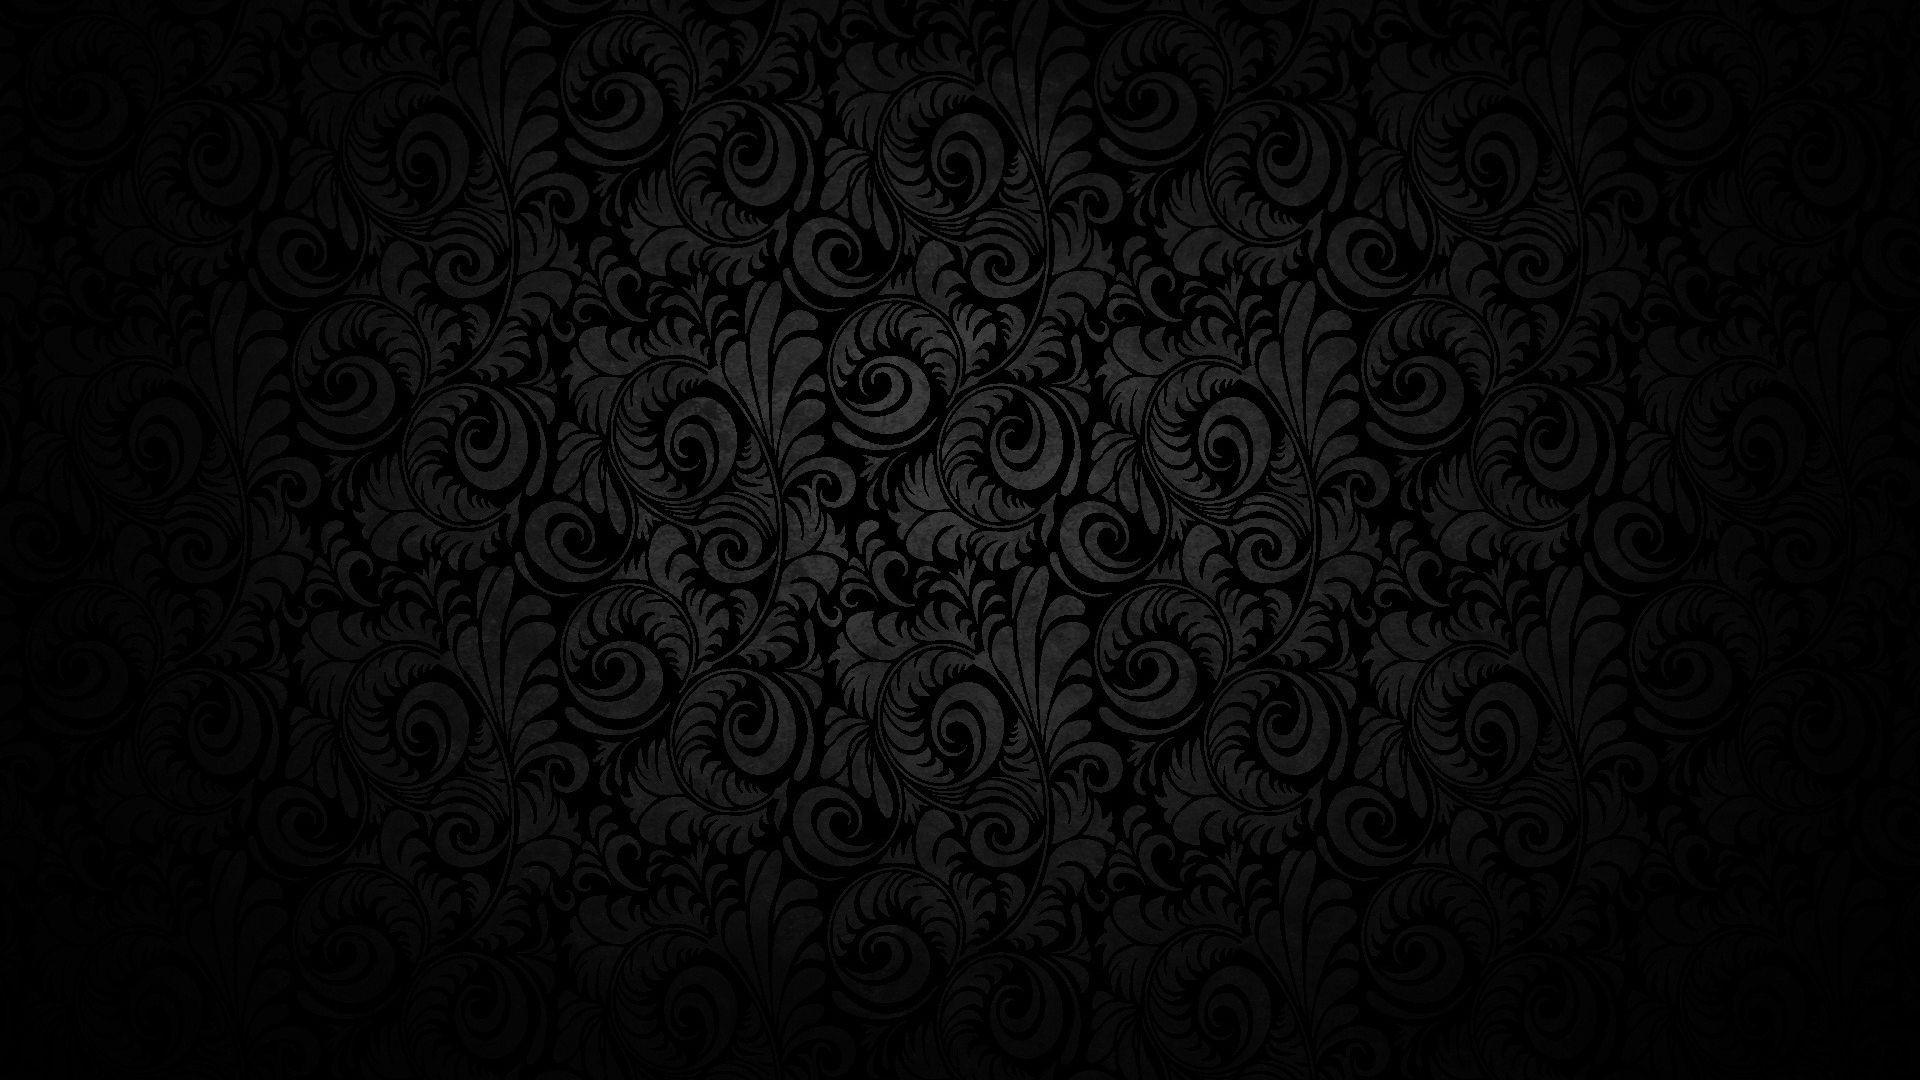 1080p wallpaper Abstract ·① Download free stunning HD ...